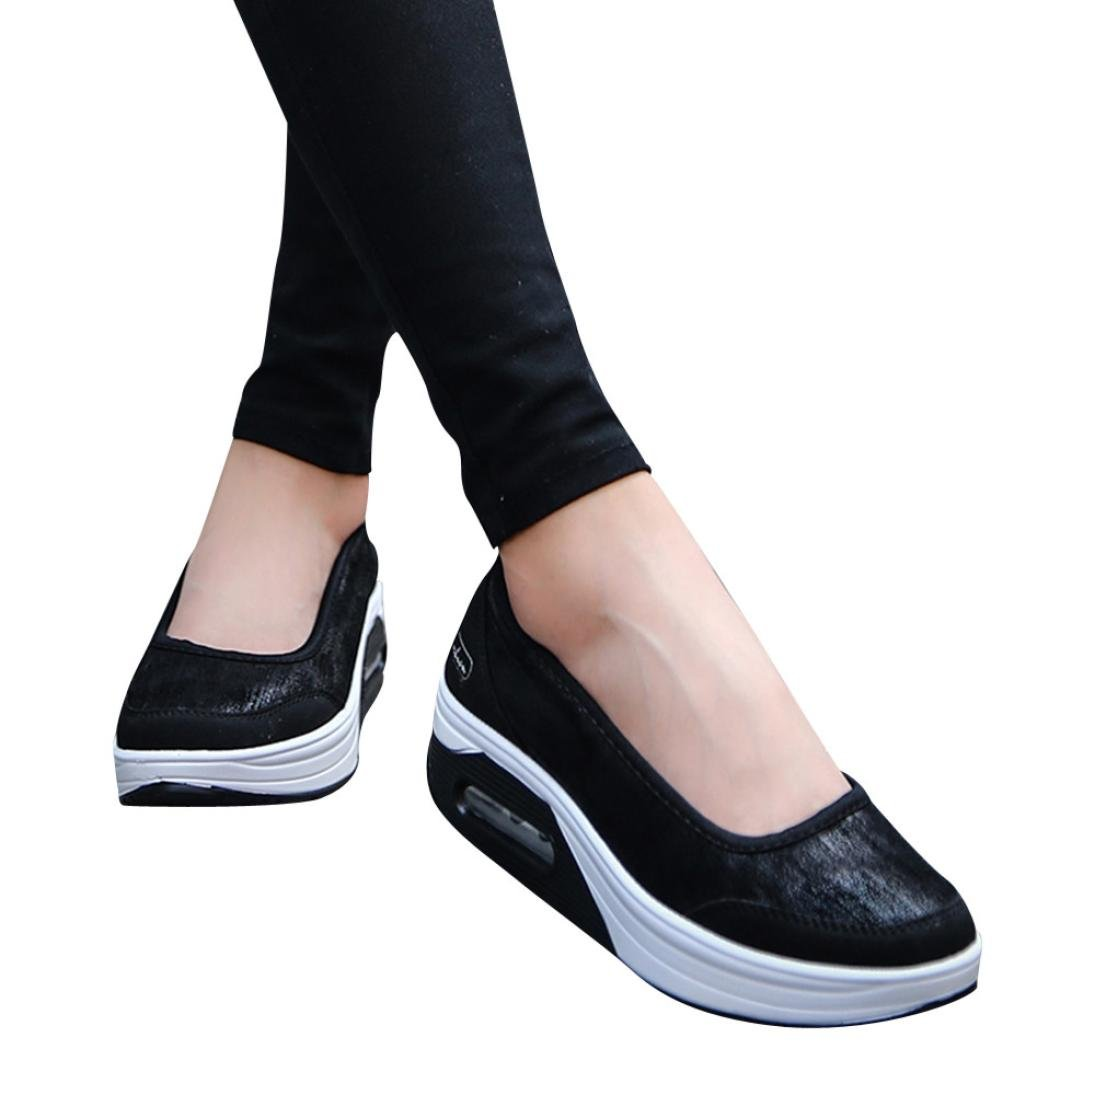 Big Promotion! Women Casual Shoes, Neartime 2018 Fashion Air Cushion Platform Shoes Shallow Round Toe Sport Sneakers (US:8, Black)